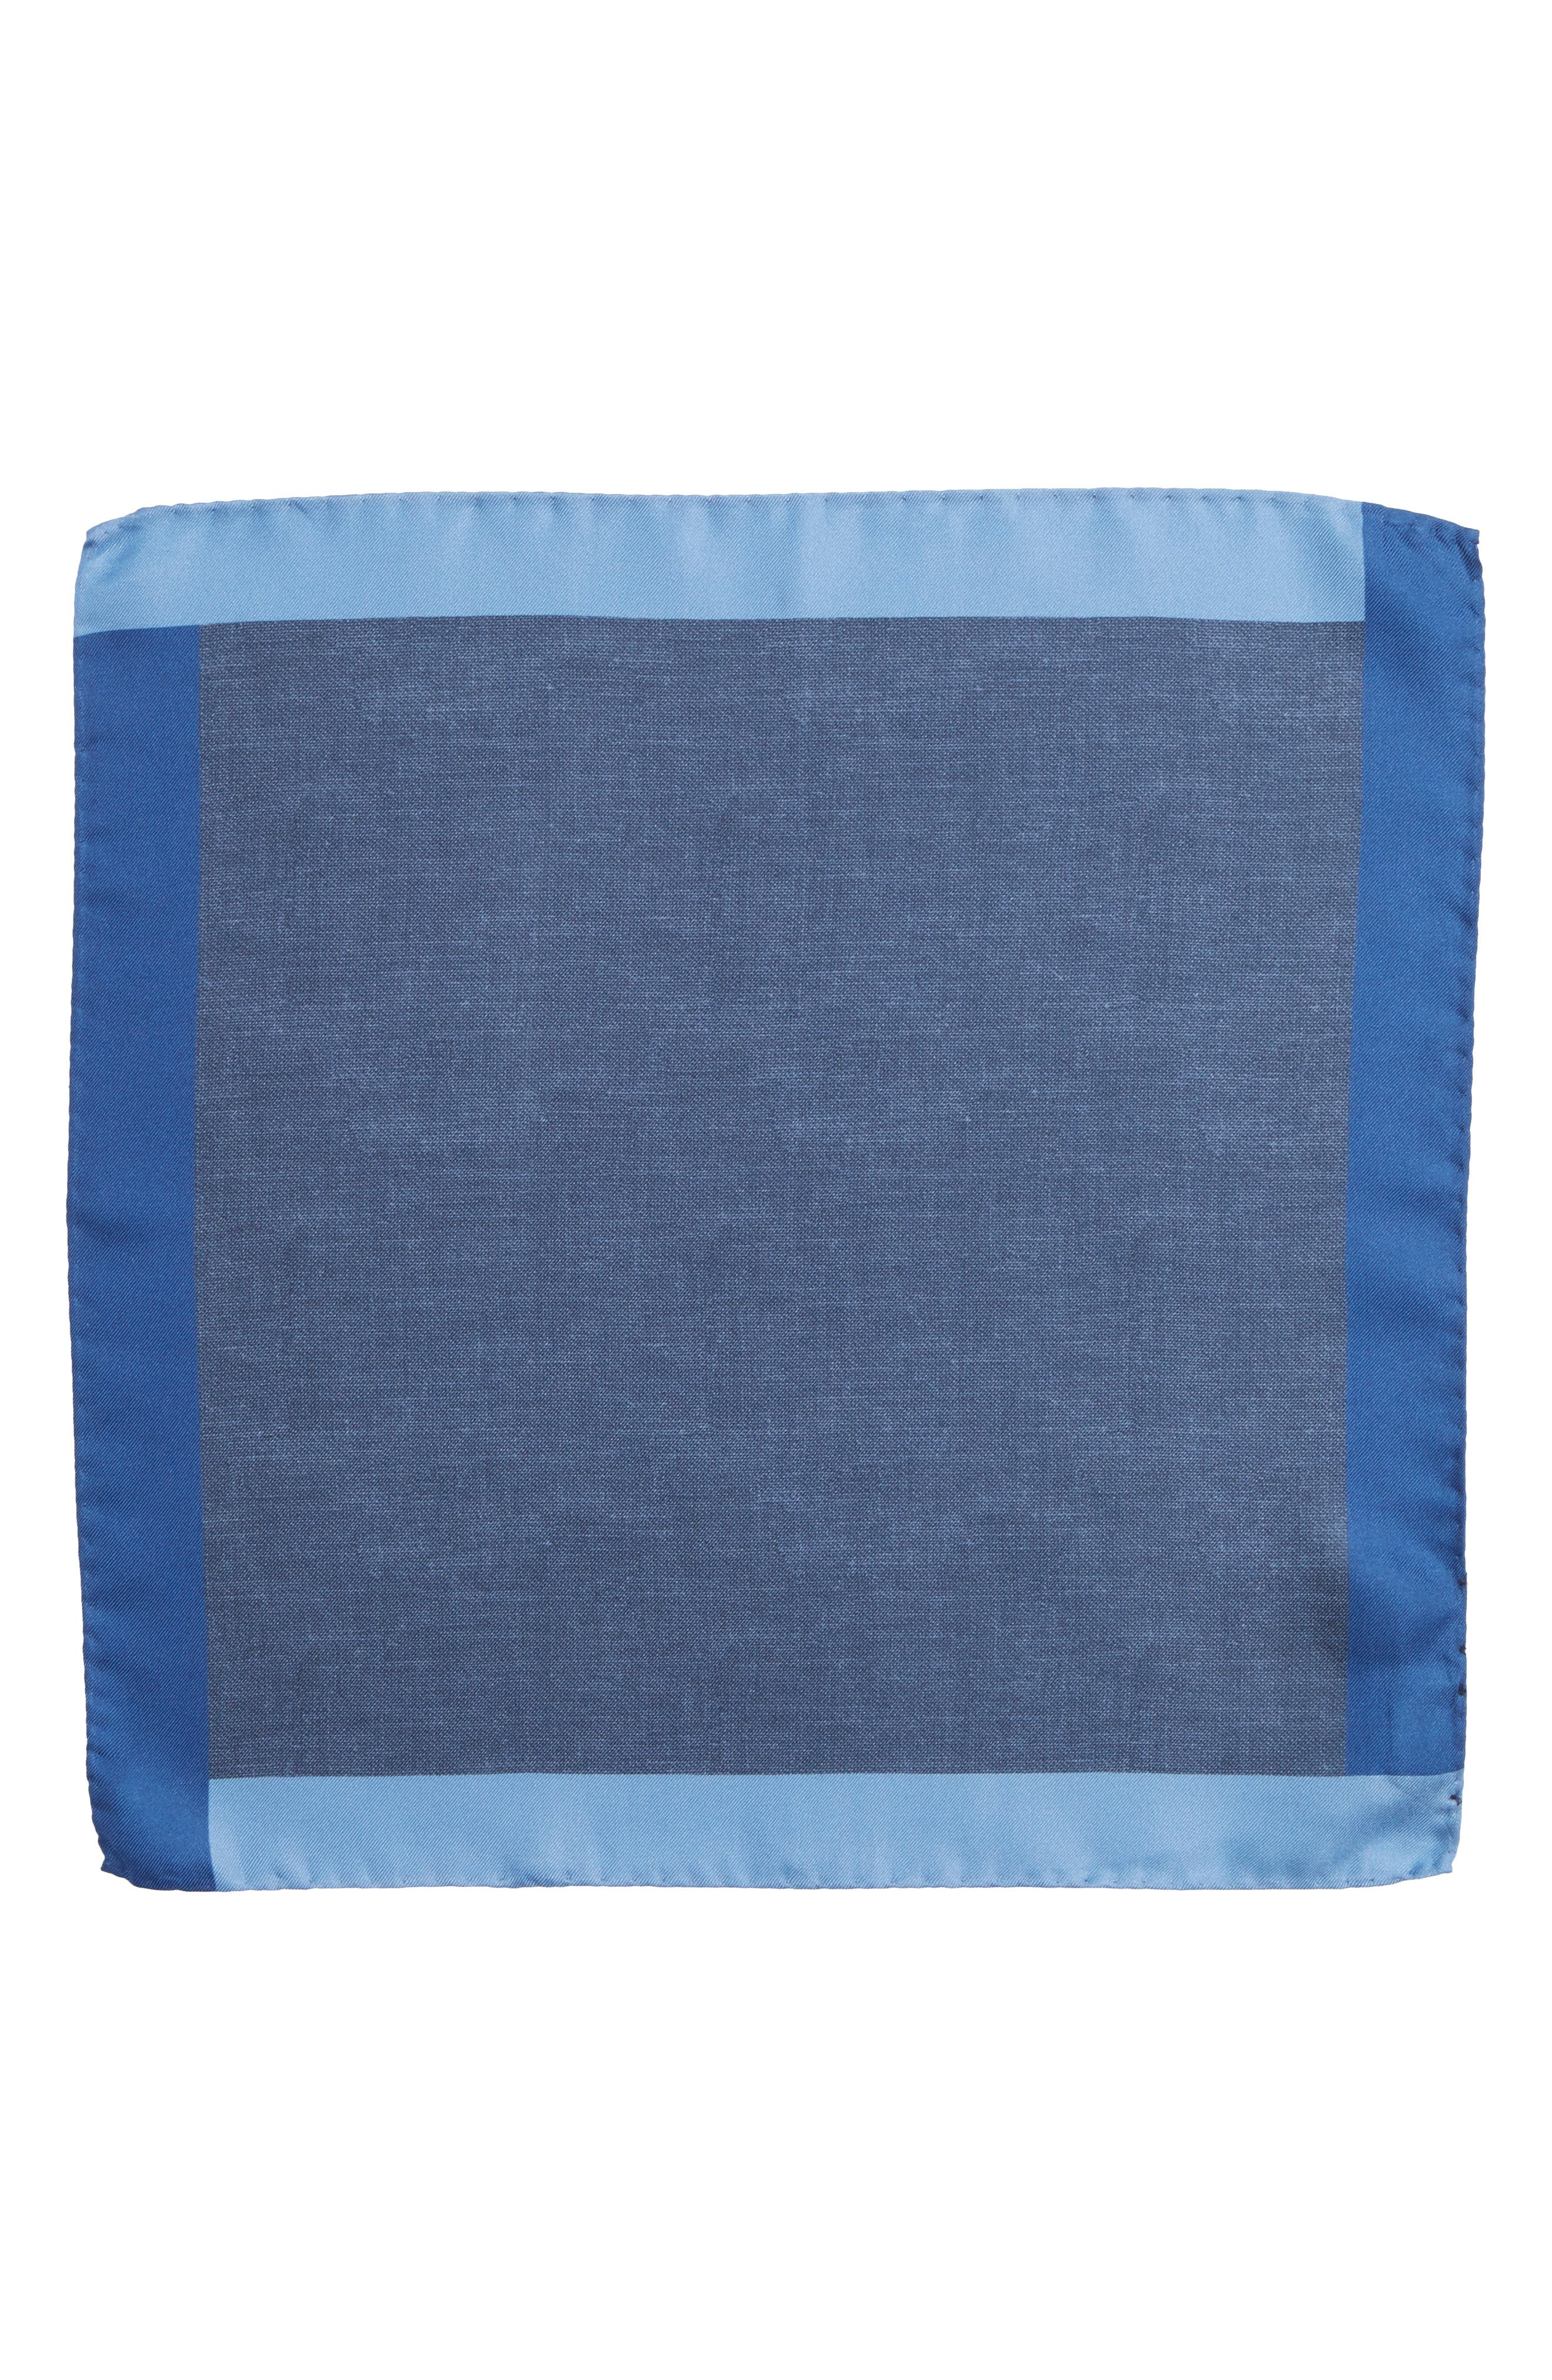 Nordstrom x BOSS Exclusive Silk Pocket Square,                             Alternate thumbnail 2, color,                             403